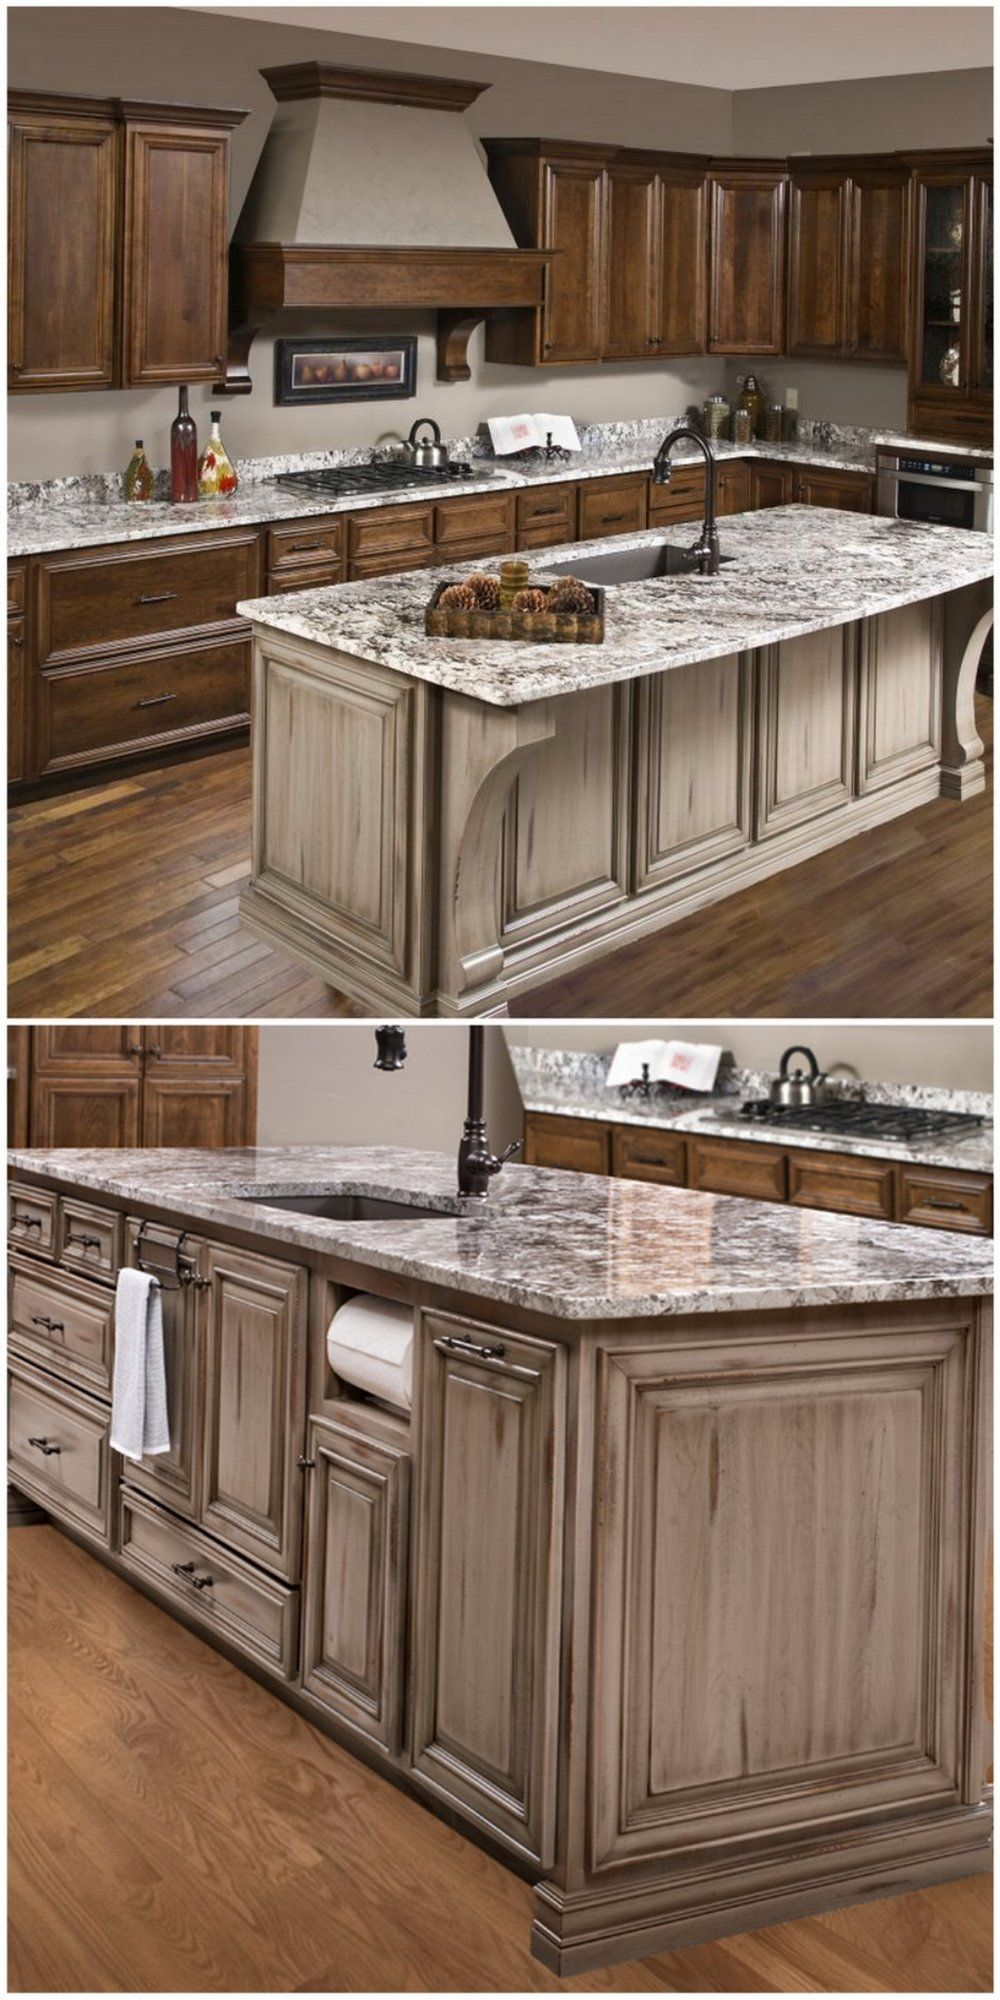 21 Unique Kitchen Island Ideas For Every Space And Budget Homelovers Kitchen Layout Kitchen Island With Seating Rustic Kitchen